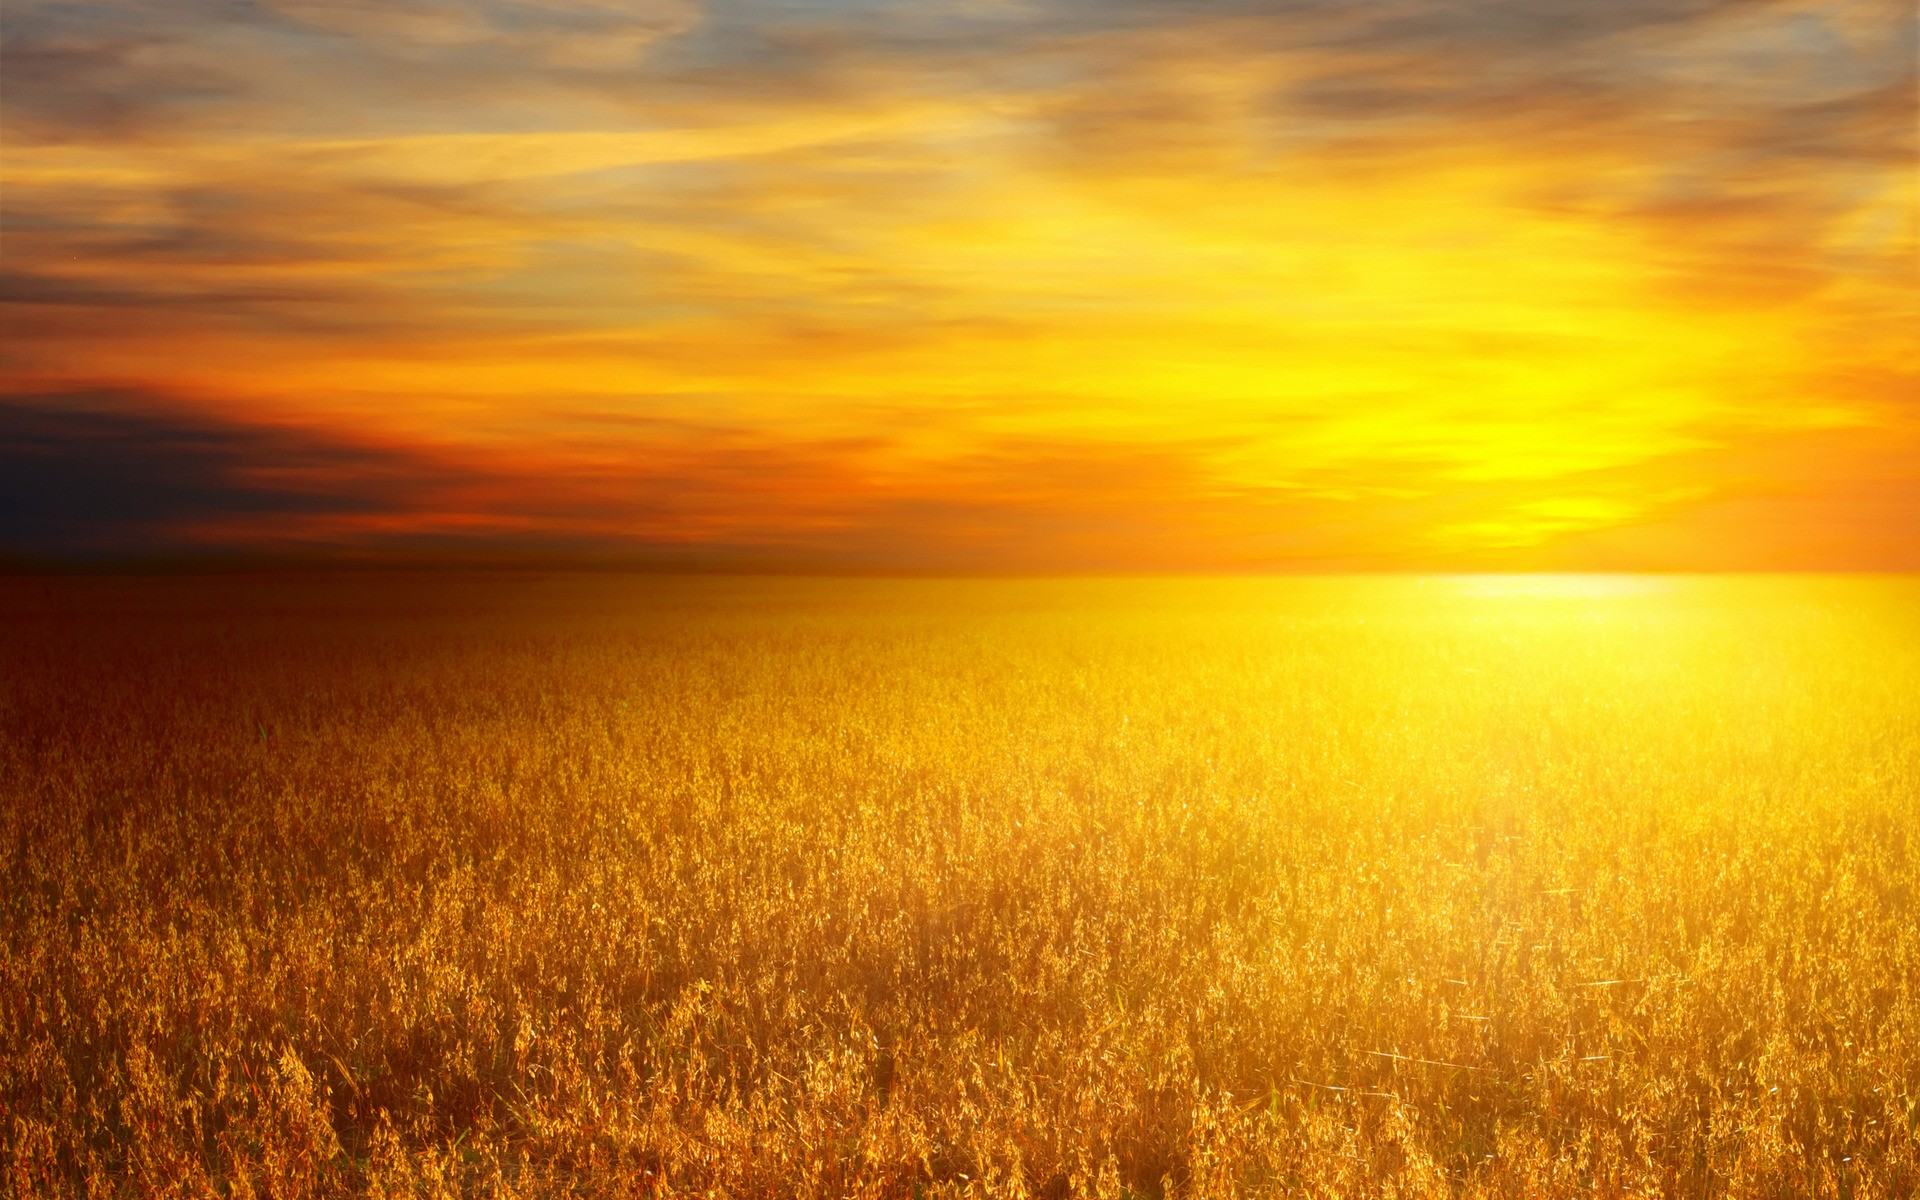 3d Animated Gif Wallpaper For Mobile Nature Landscape Sunset Orange Field Sky Clouds